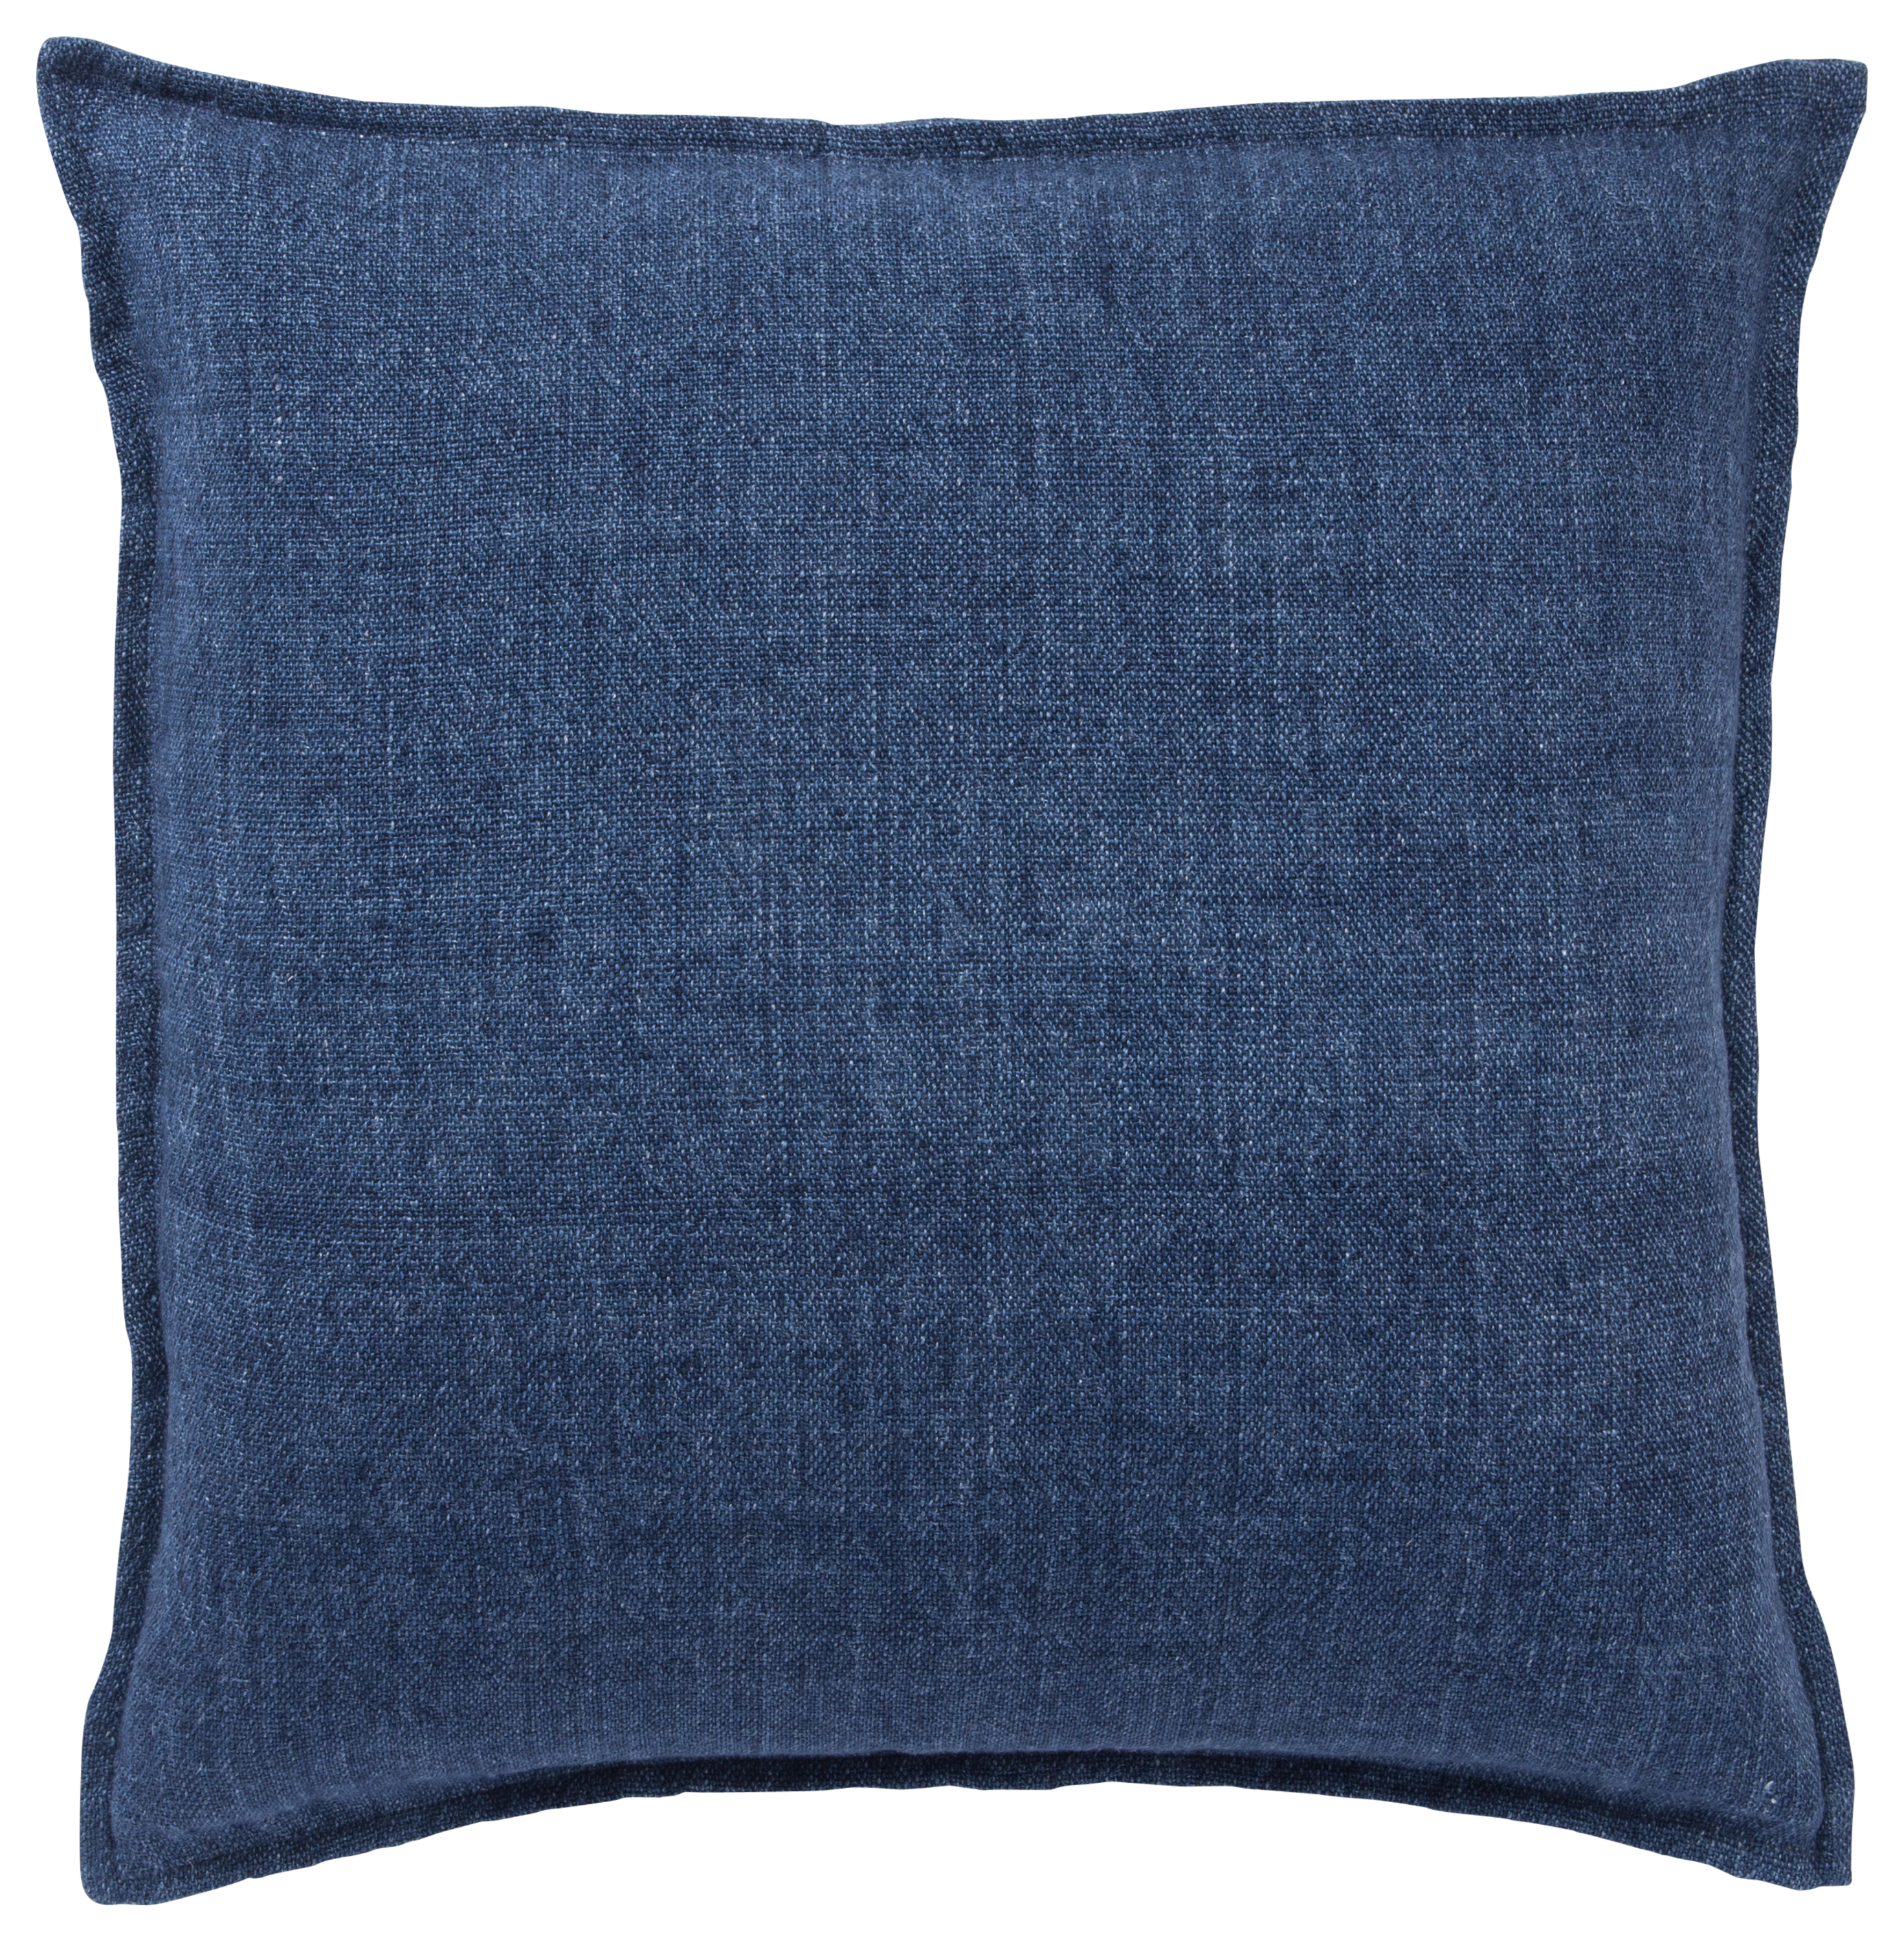 Jaipur Living Blanche Solid Blue Poly Throw Pillow